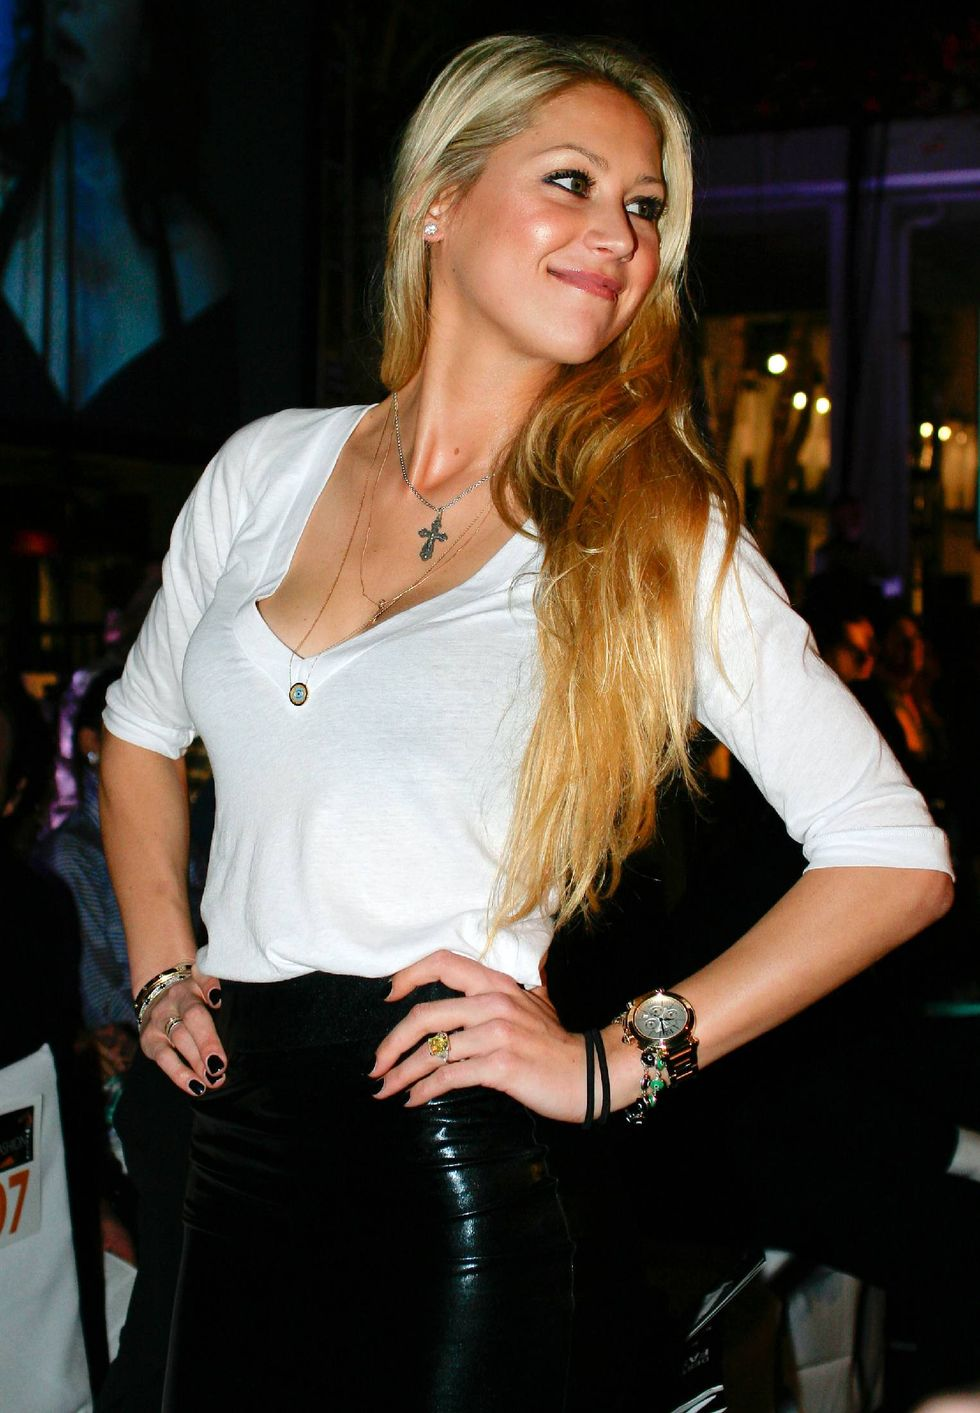 anna-kournikova-destination-fashion-2009-in-miami-01